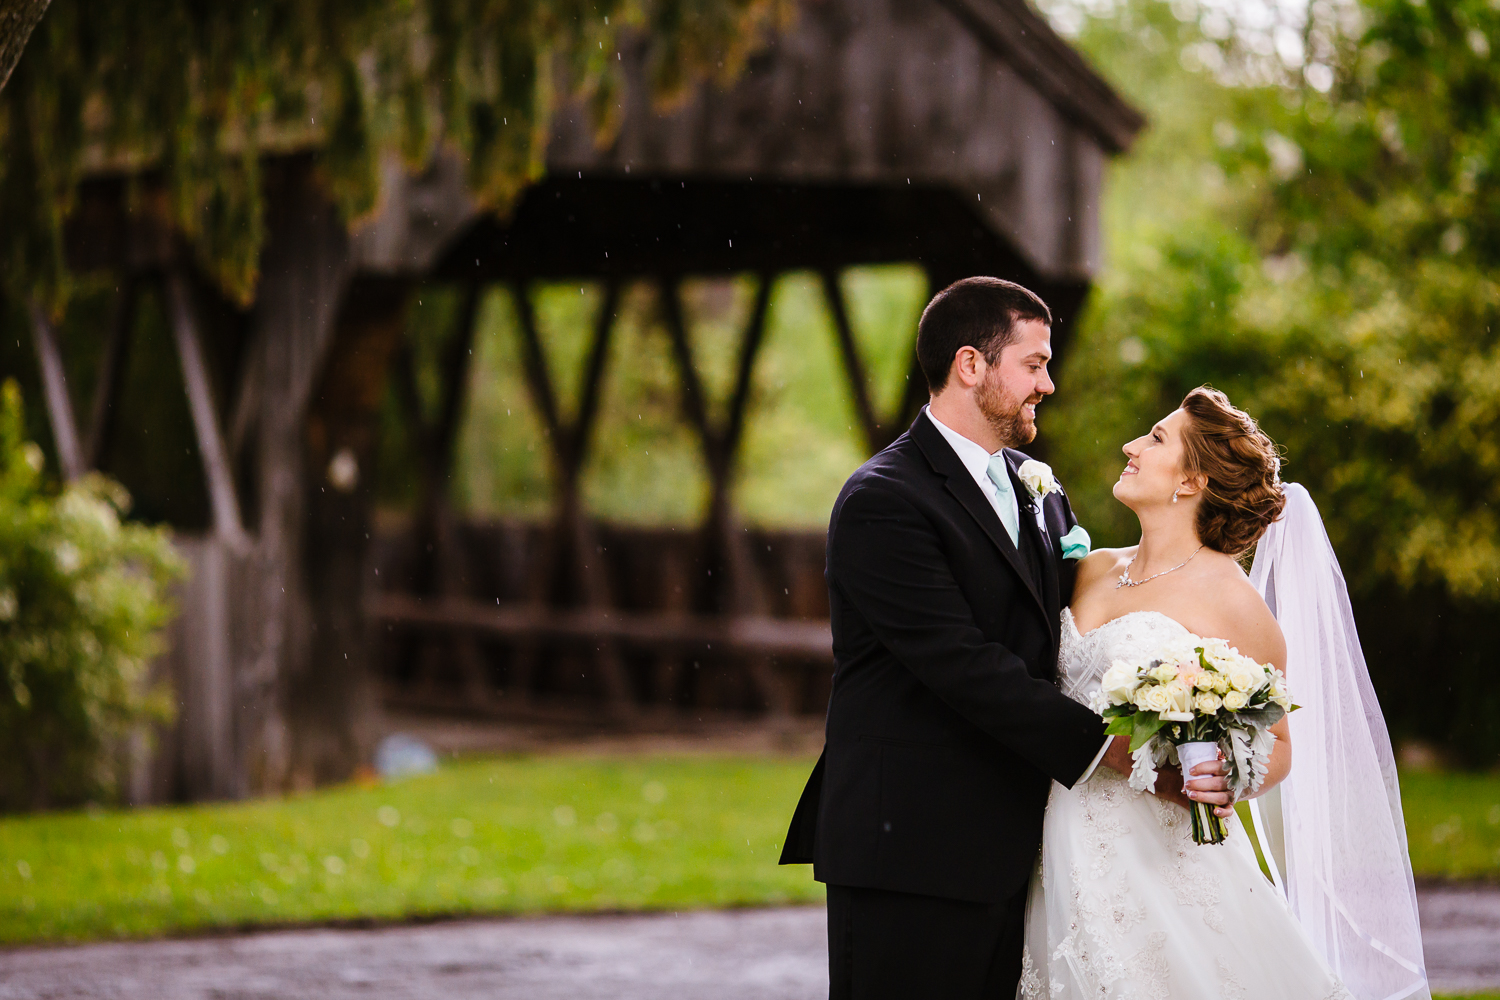 Bride and groom look at each other. They are standing in front of a covered wooden bridge.